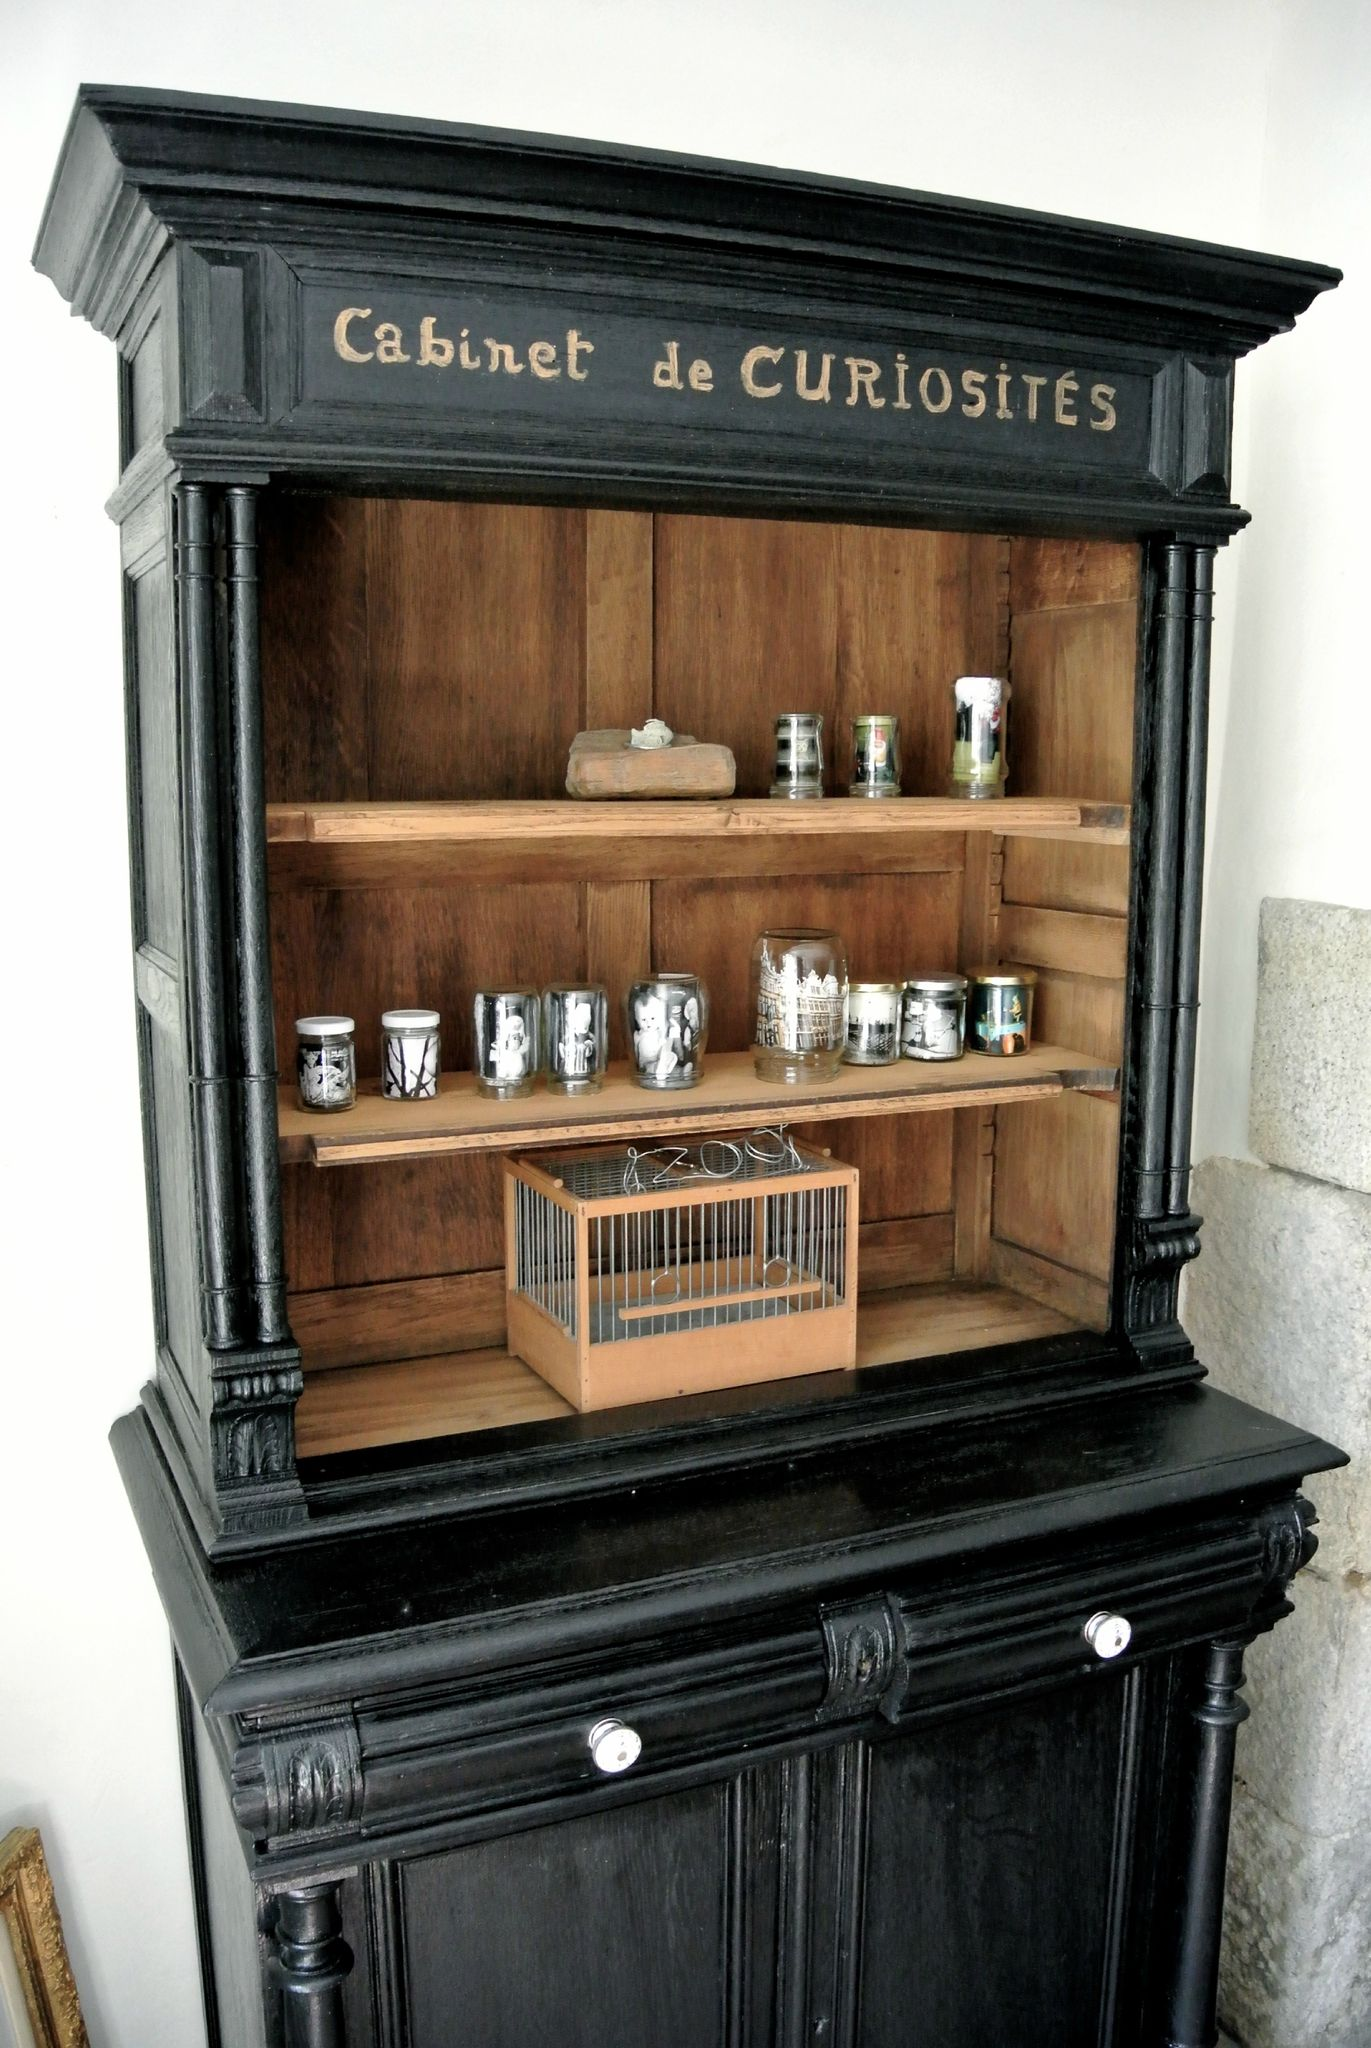 Cabinet Meuble Meuble Cabinet